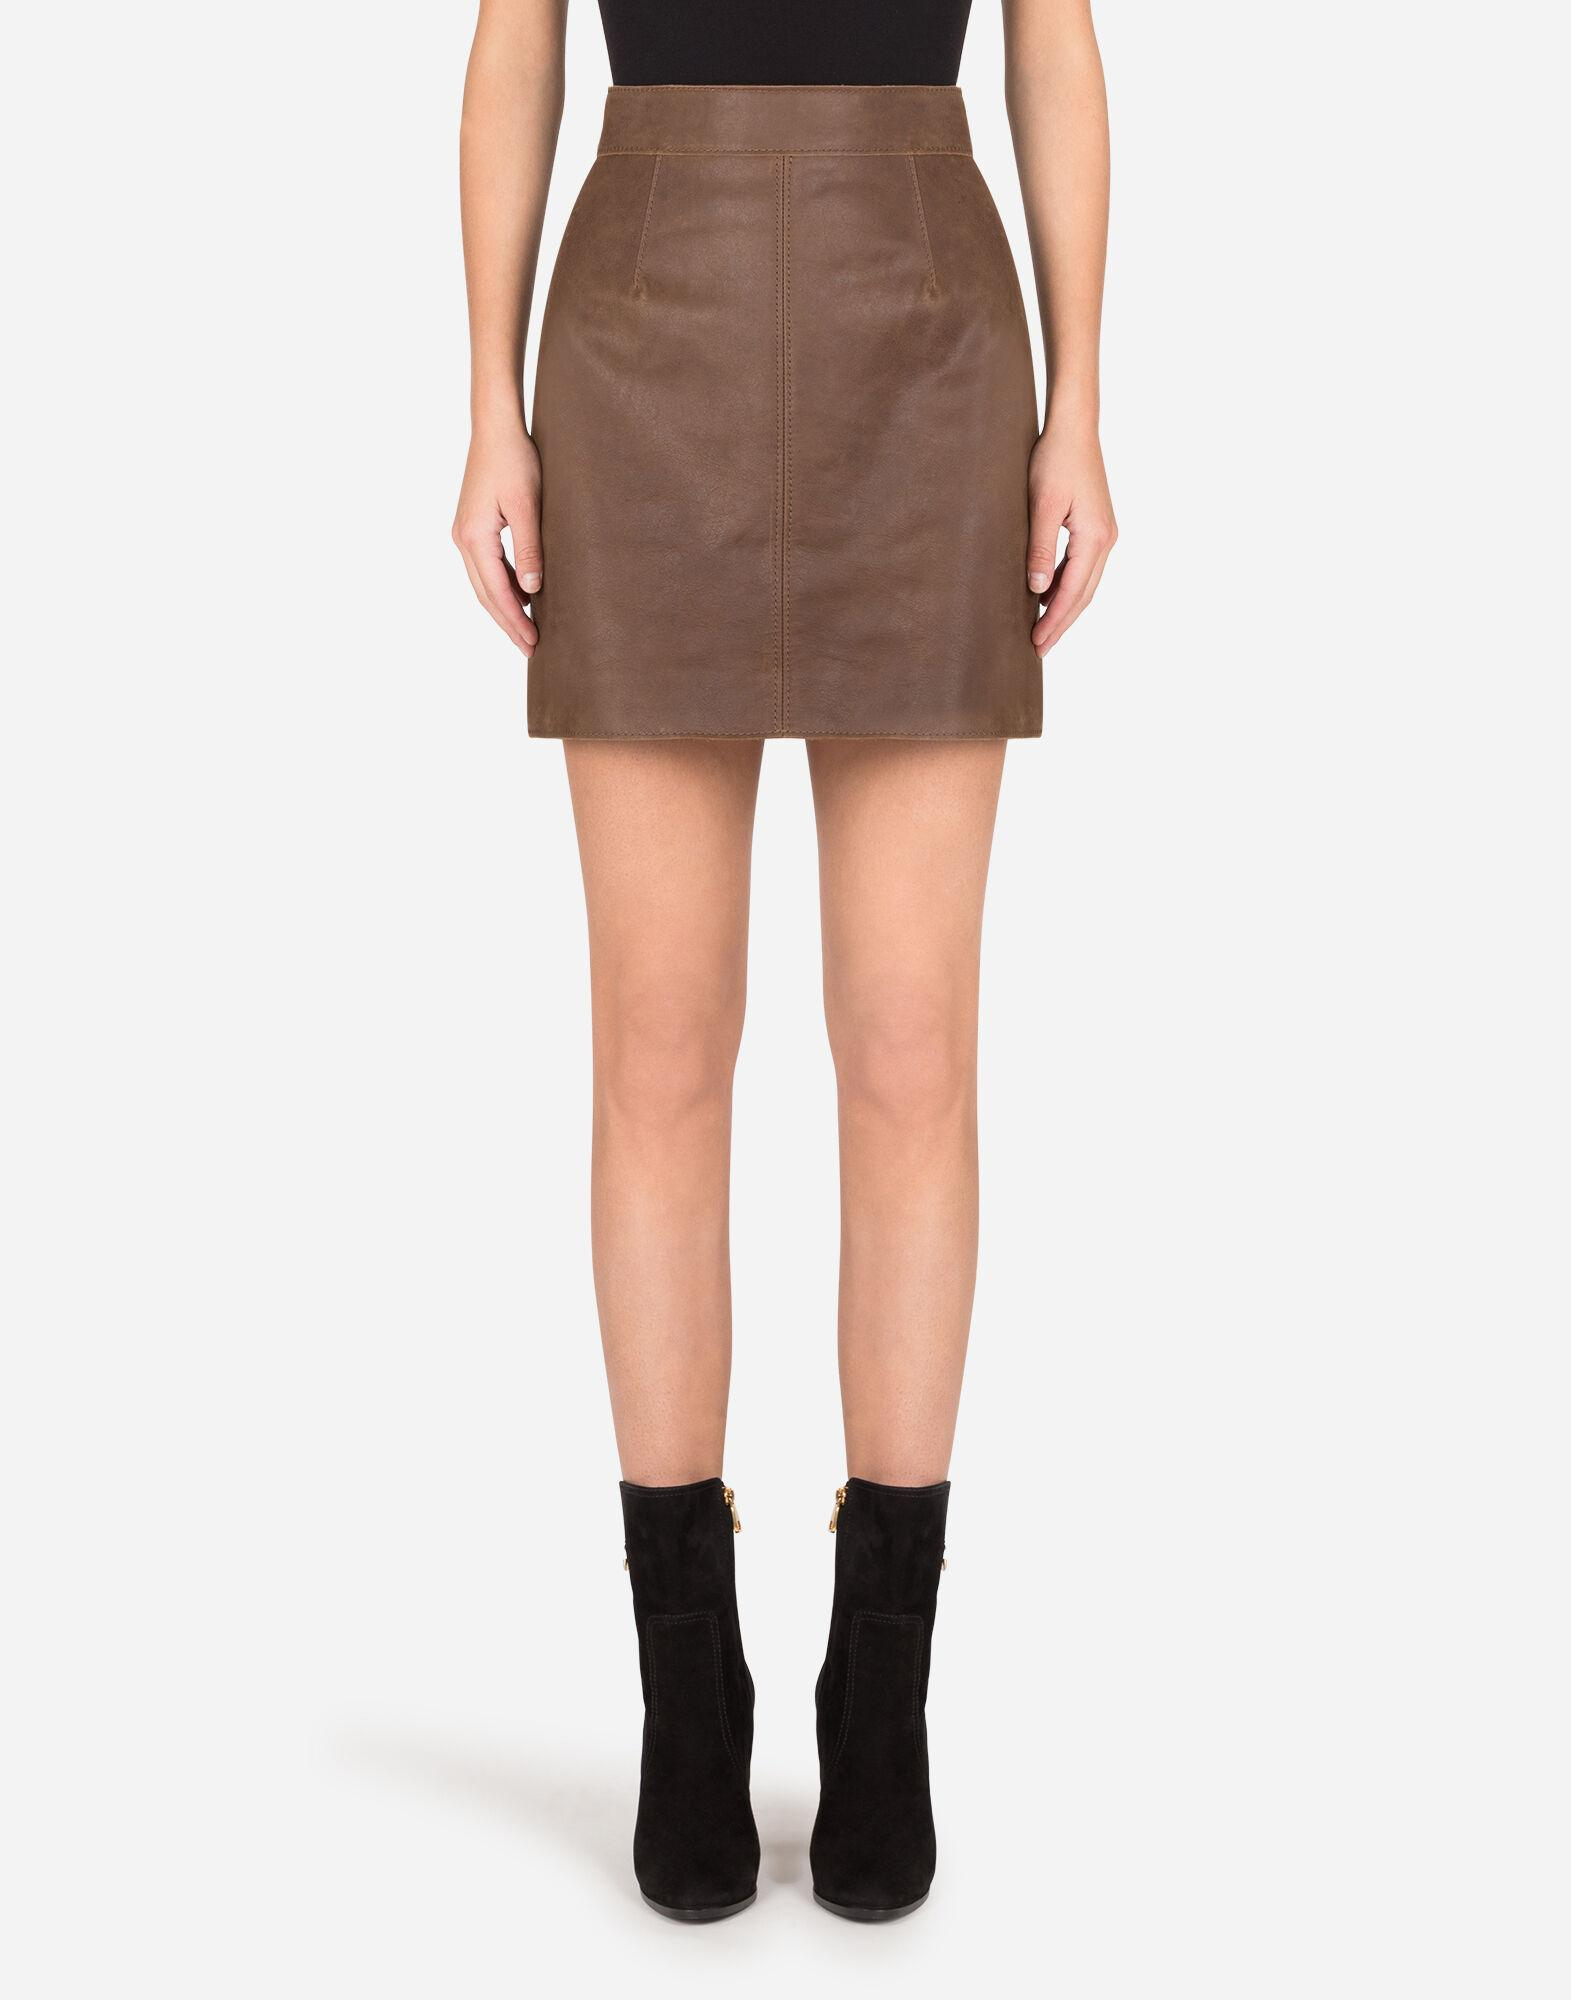 A-line miniskirt in hammered nappa leather